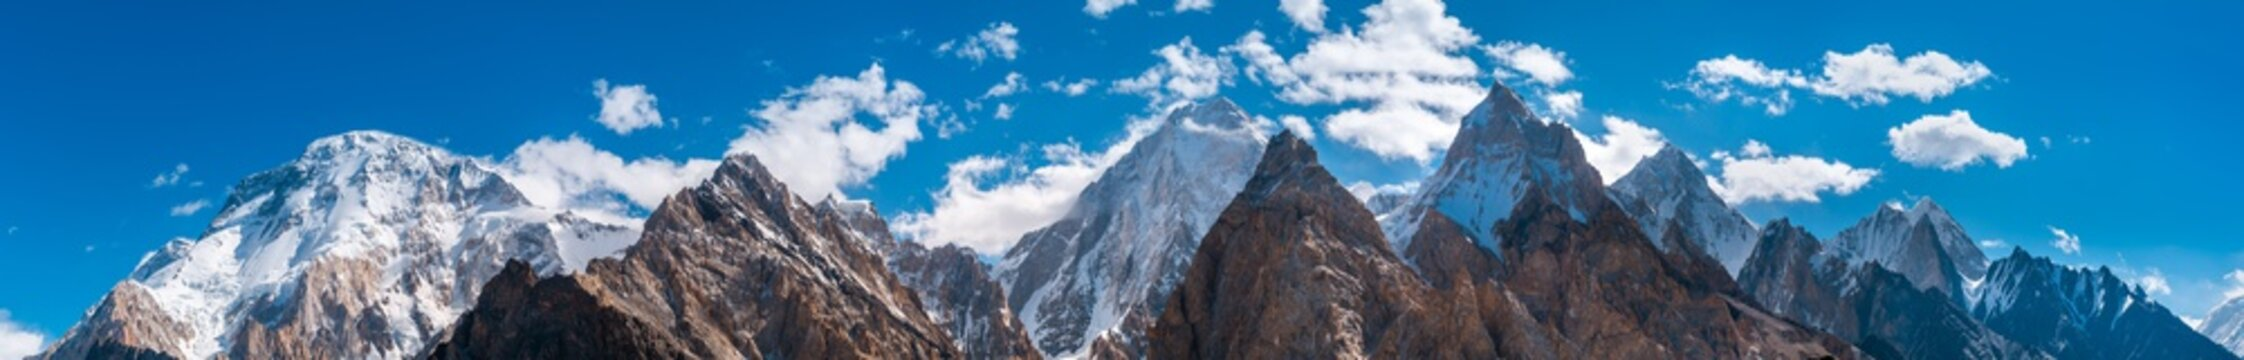 Panoramic view of Karakoram mountains range with Broad Peak, Gasherbrum (in the middle) from Vigne Glacier, on the way to Ali Camp, Pakistan